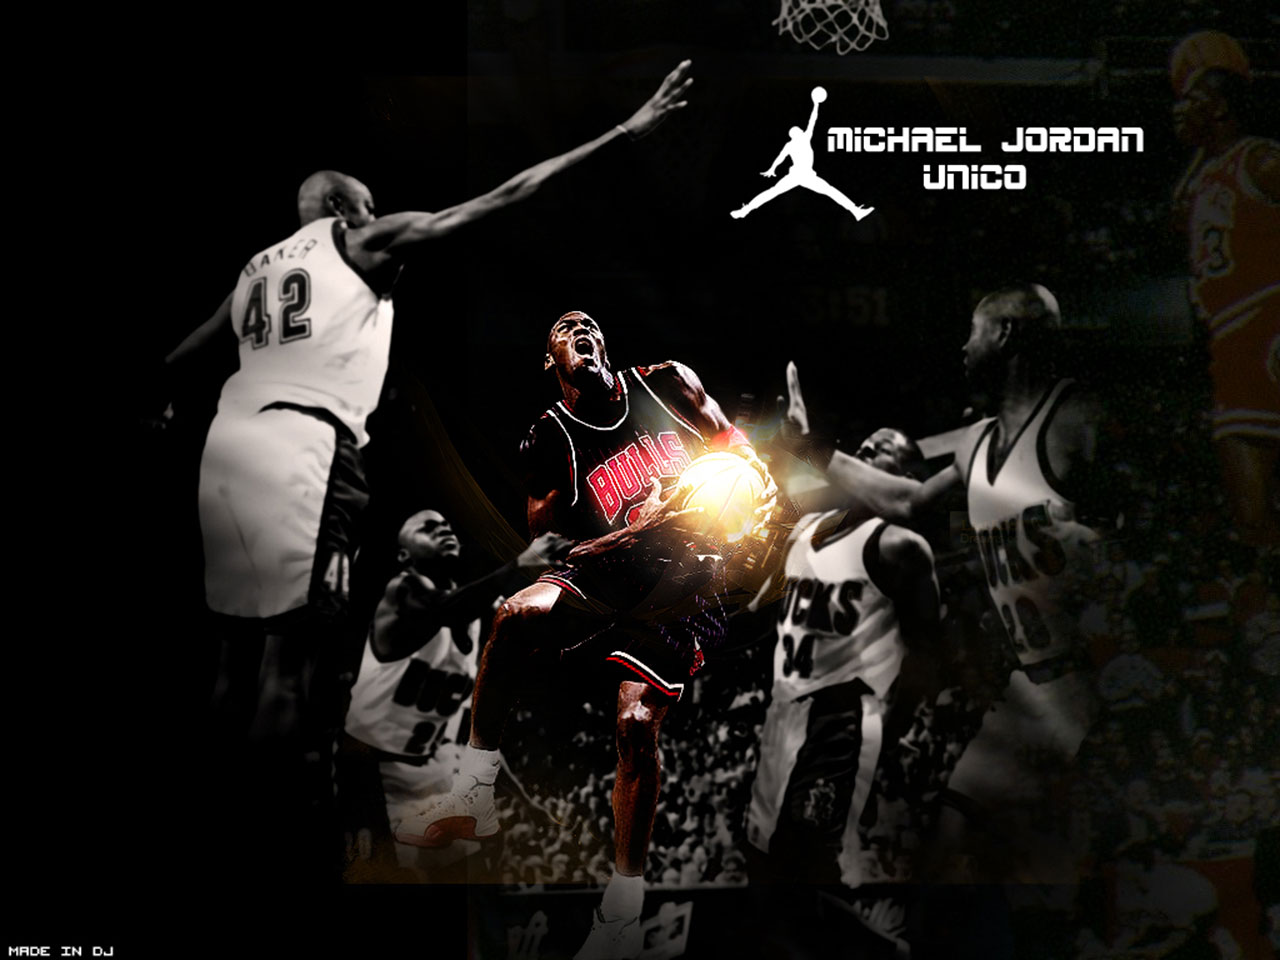 MICHAEL JORDAN WALLPAPERS ~ HD WALLPAPERS